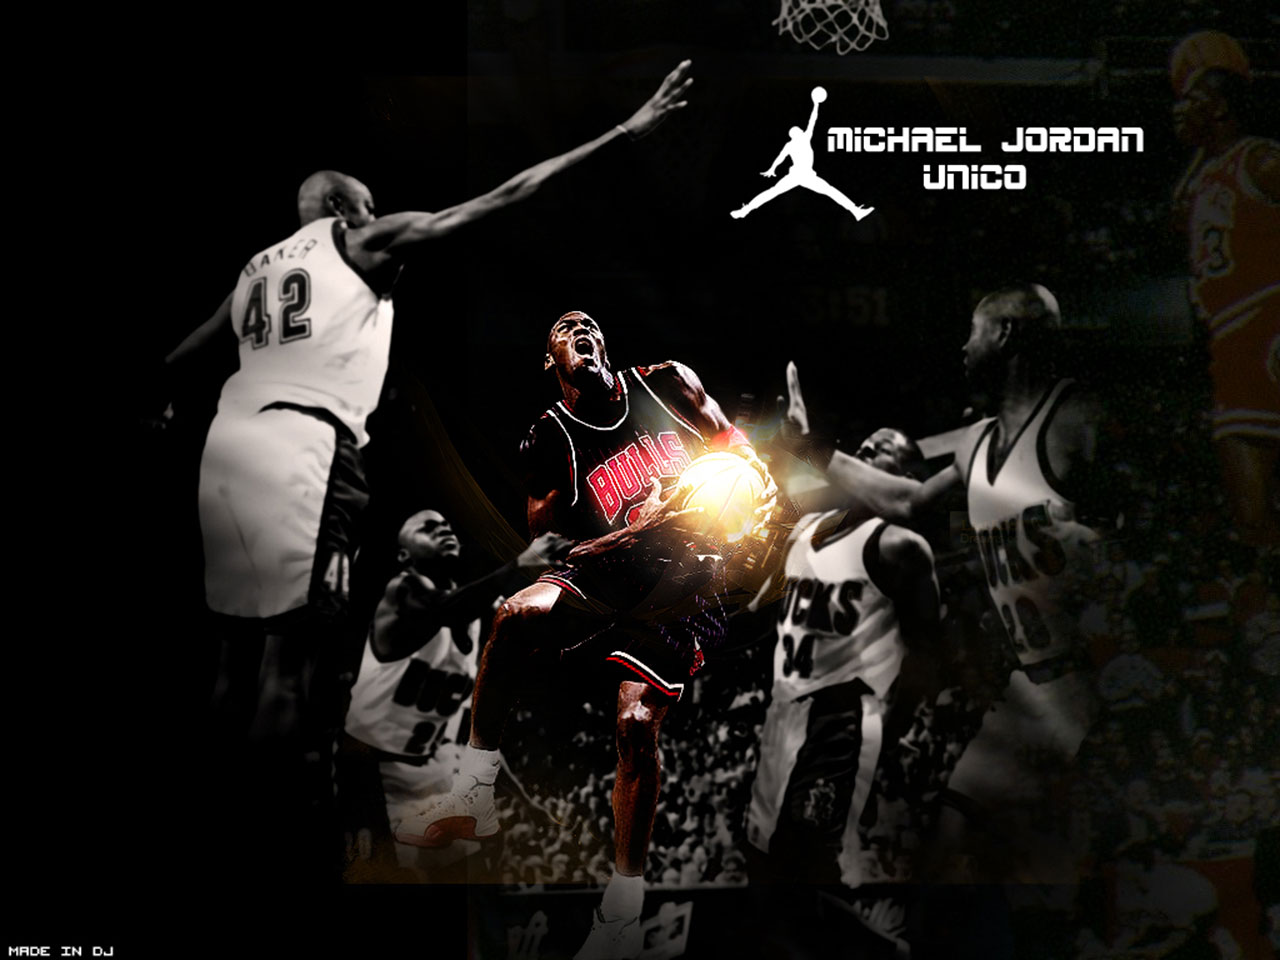 MICHAEL JORDAN WALLPAPERS ~ HD WALLPAPERS